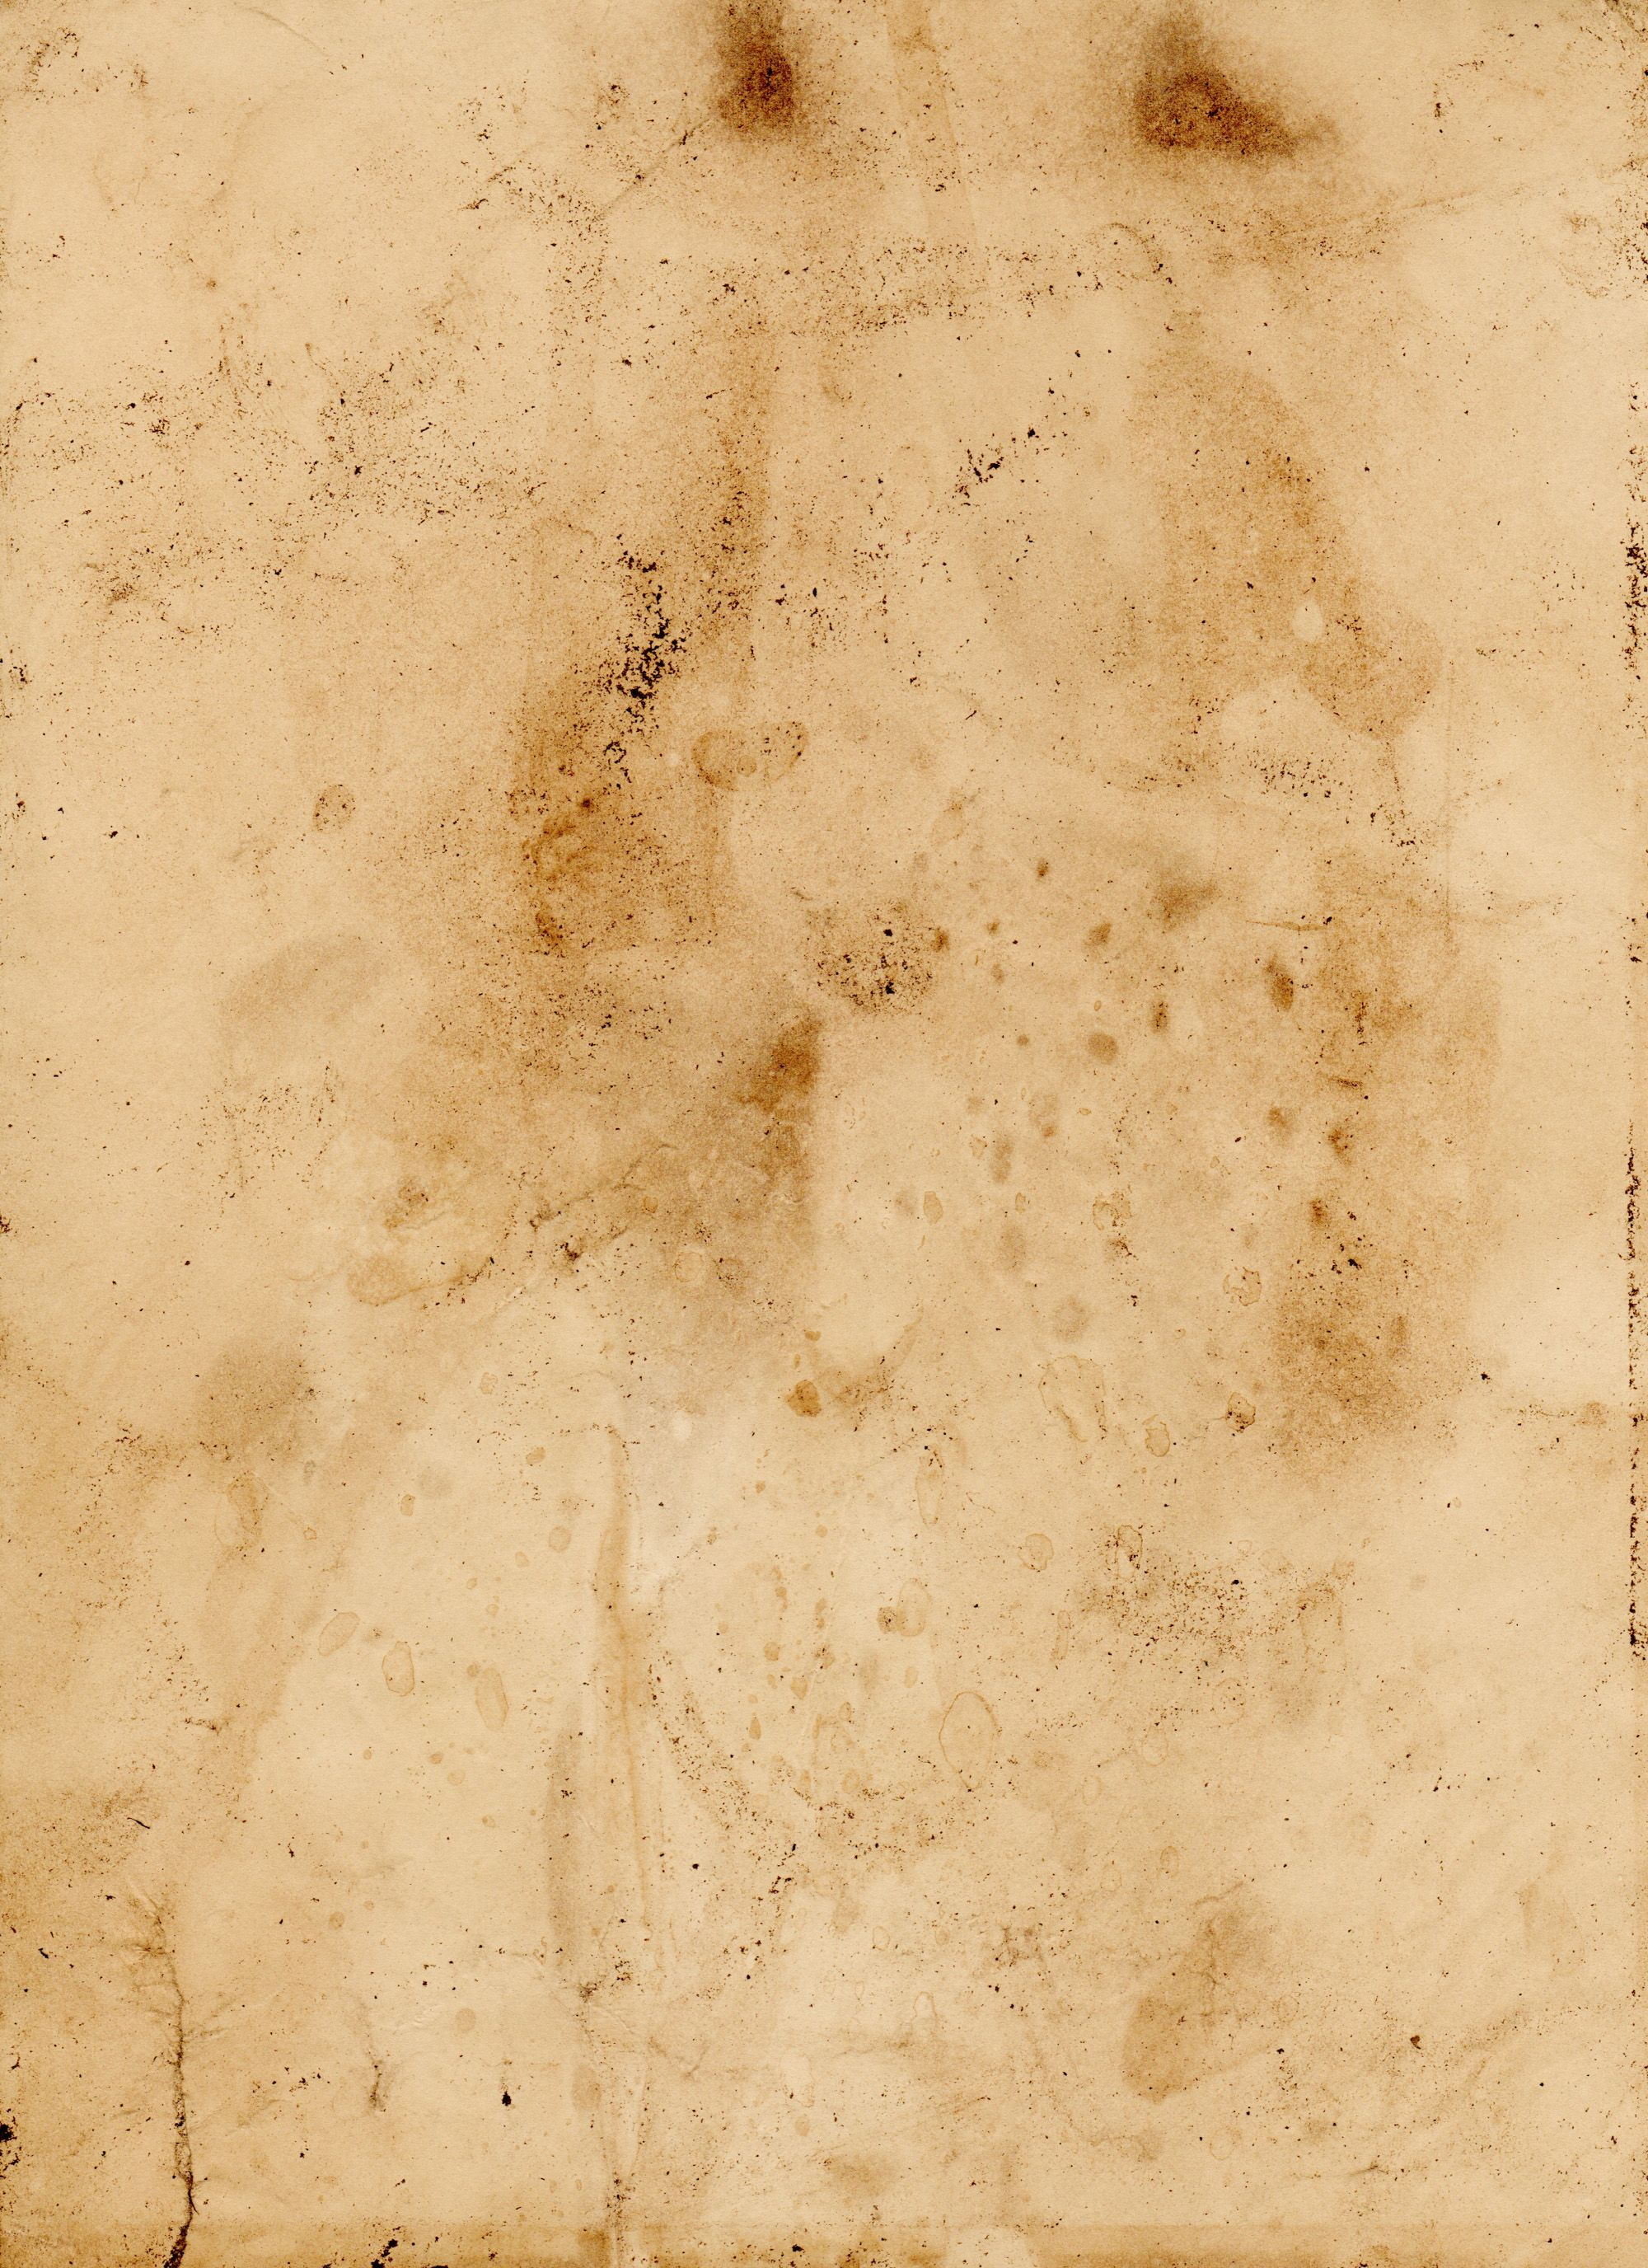 Grungy Tea Stained Background Pages Old Looking Blank Etsy In 2020 Vintage Paper Background Paper Background Design Paper Background